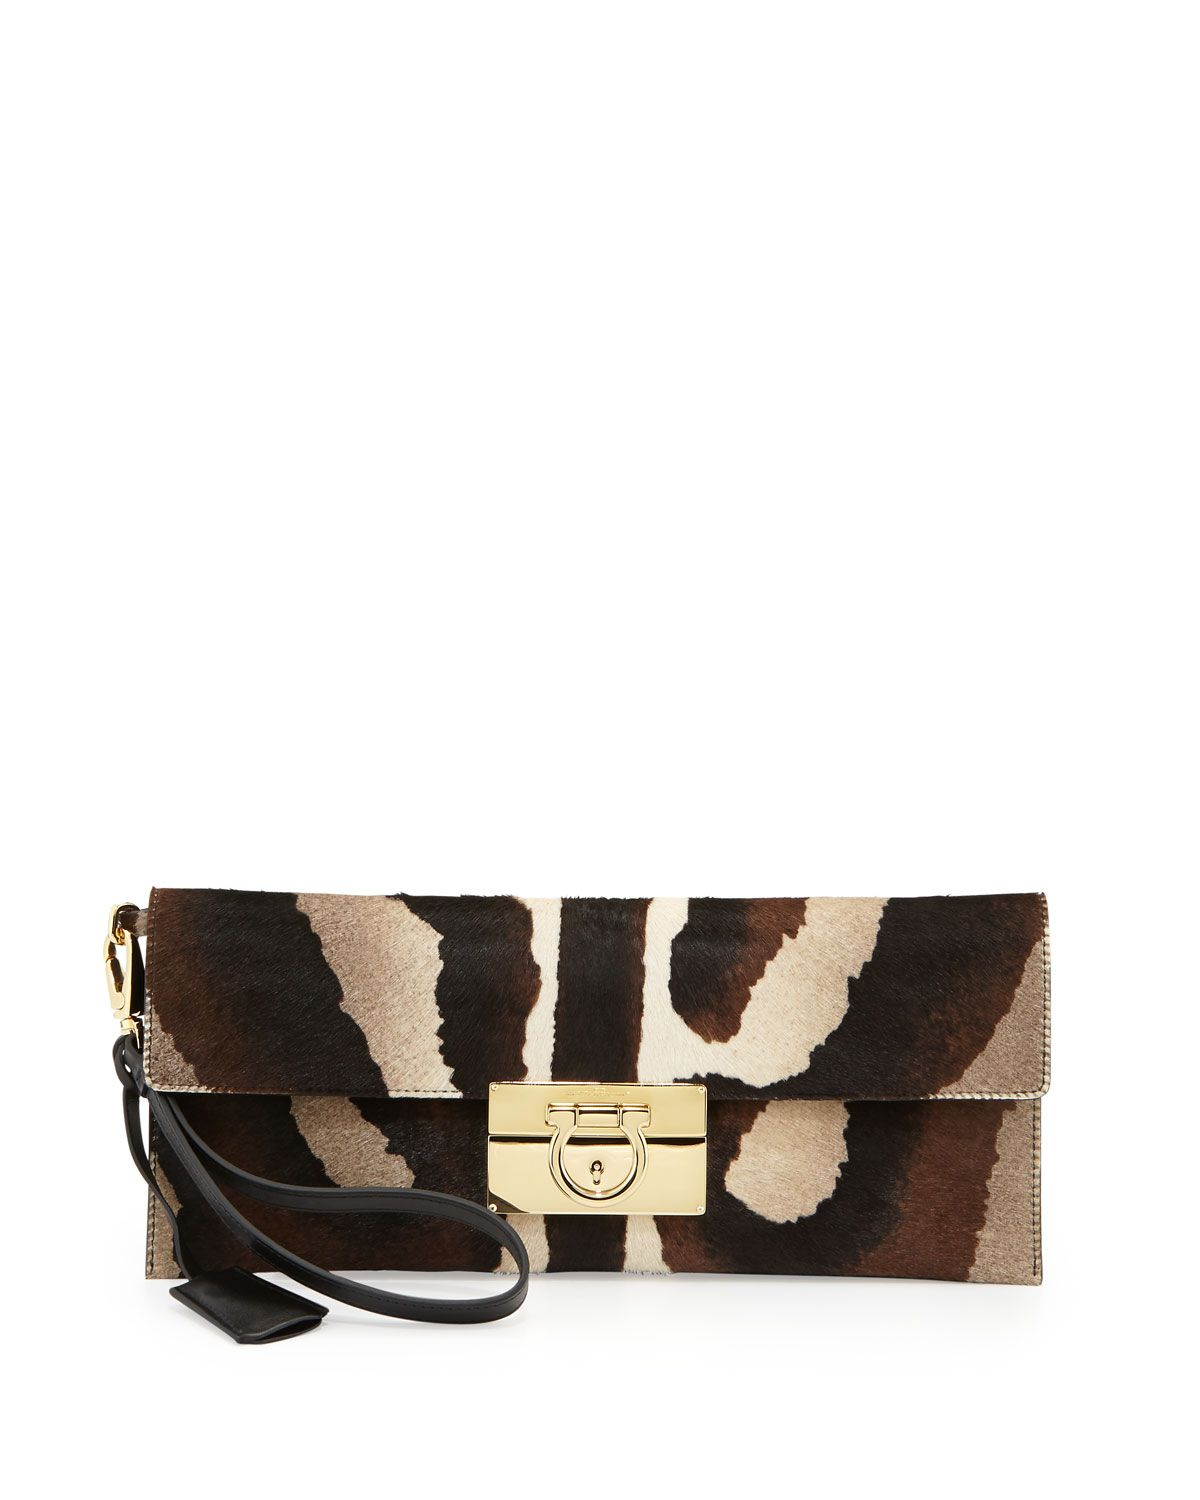 ca898e6d62d0 leopard print clutch. Salvatore Ferragamo Fall Handbags ...